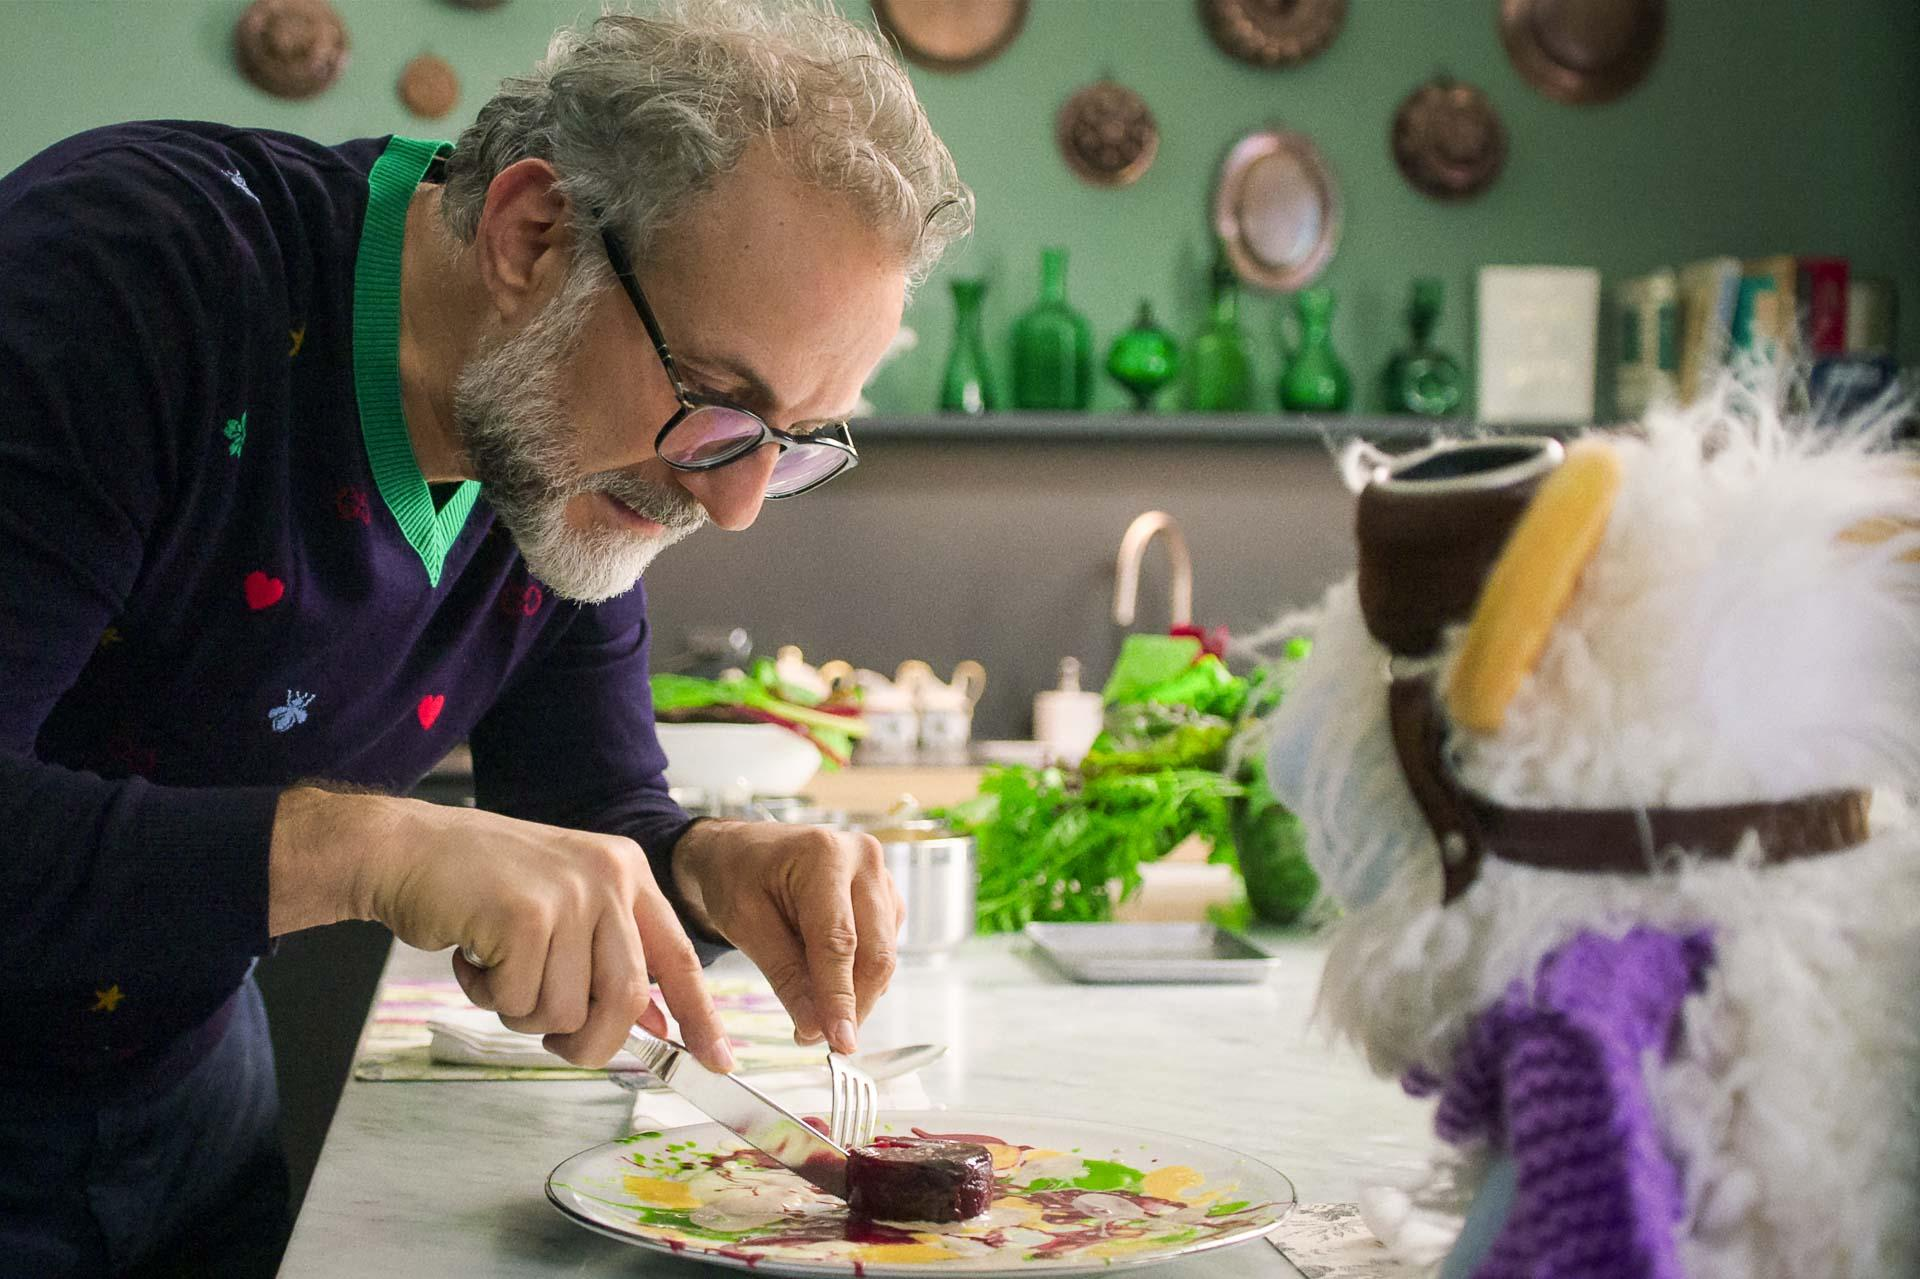 MASSIMO BOTTURA and WAFFLES in episode 105